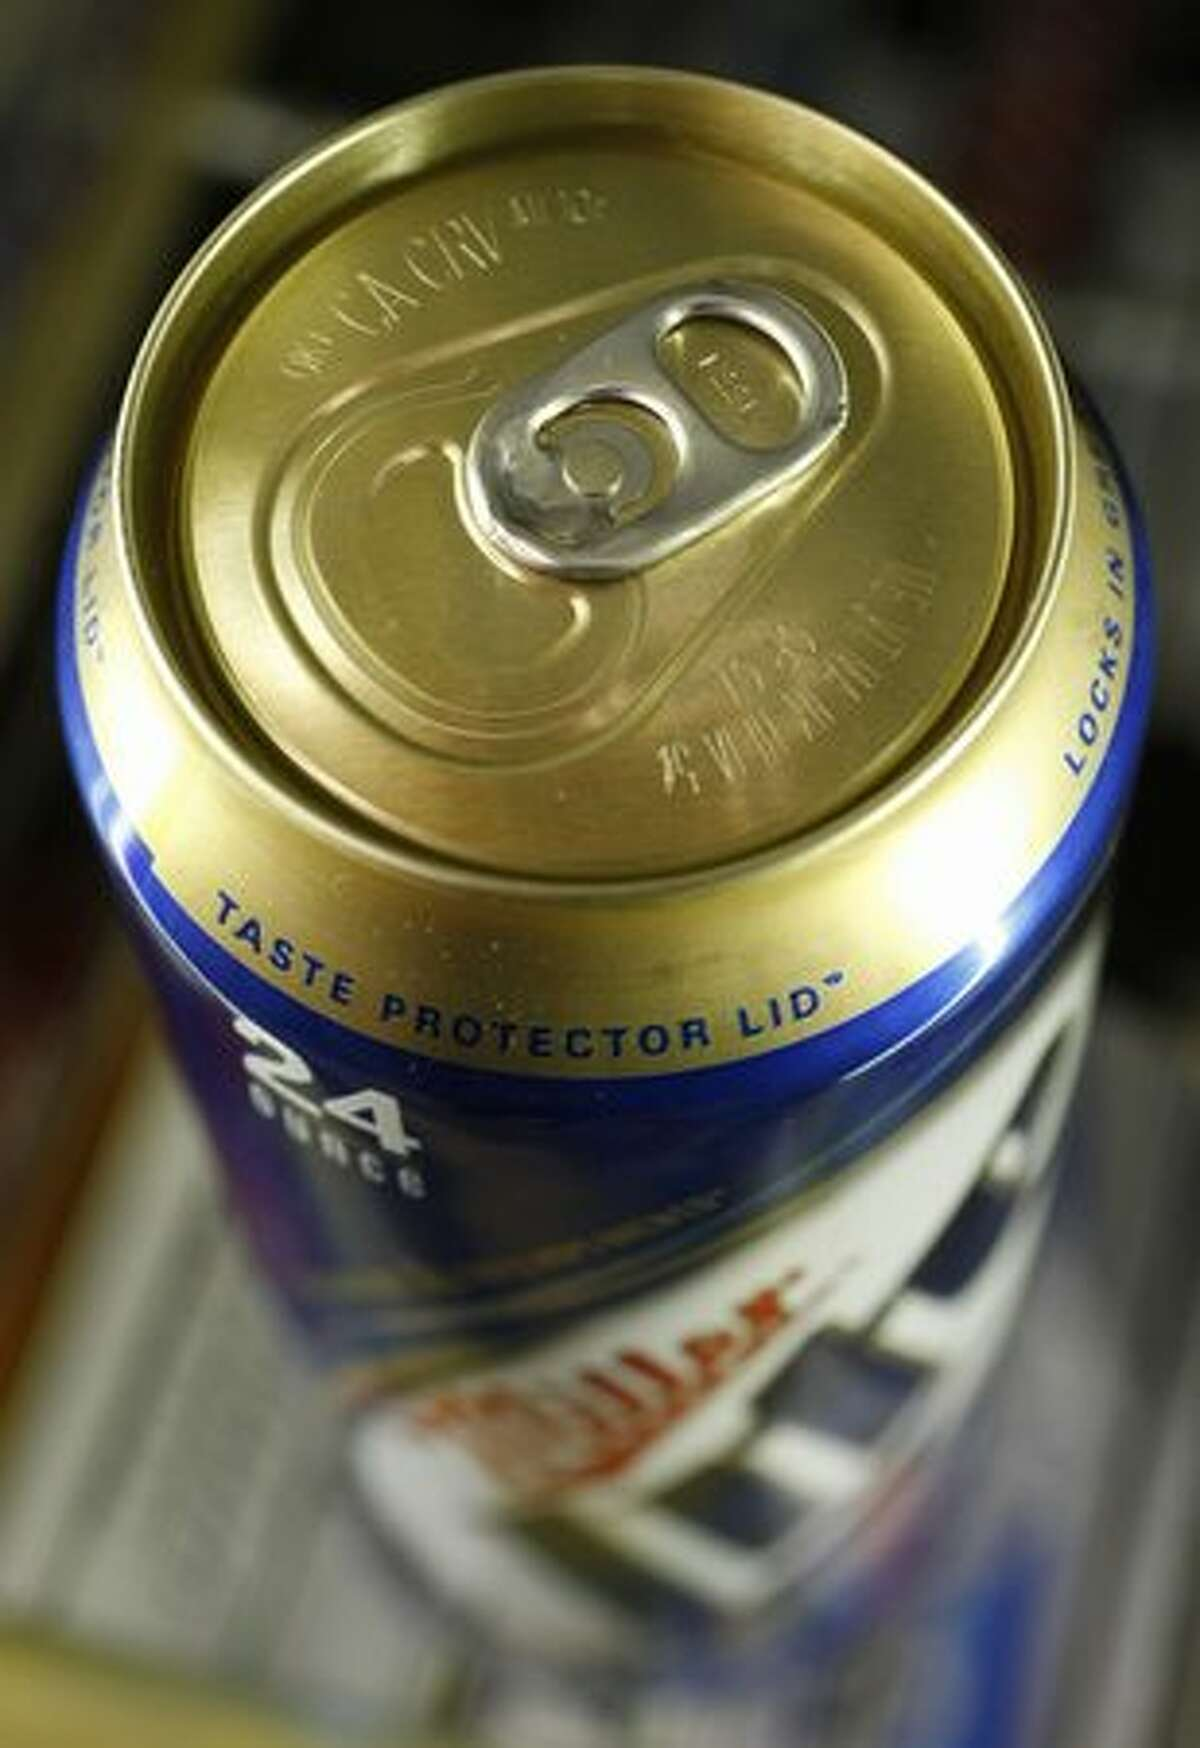 A can of Miller Lite beer is shown at a store in Palo Alto, Calif., Wednesday, Jan. 20, 2010. MillerCoors started advertising flagship Miller Lite's